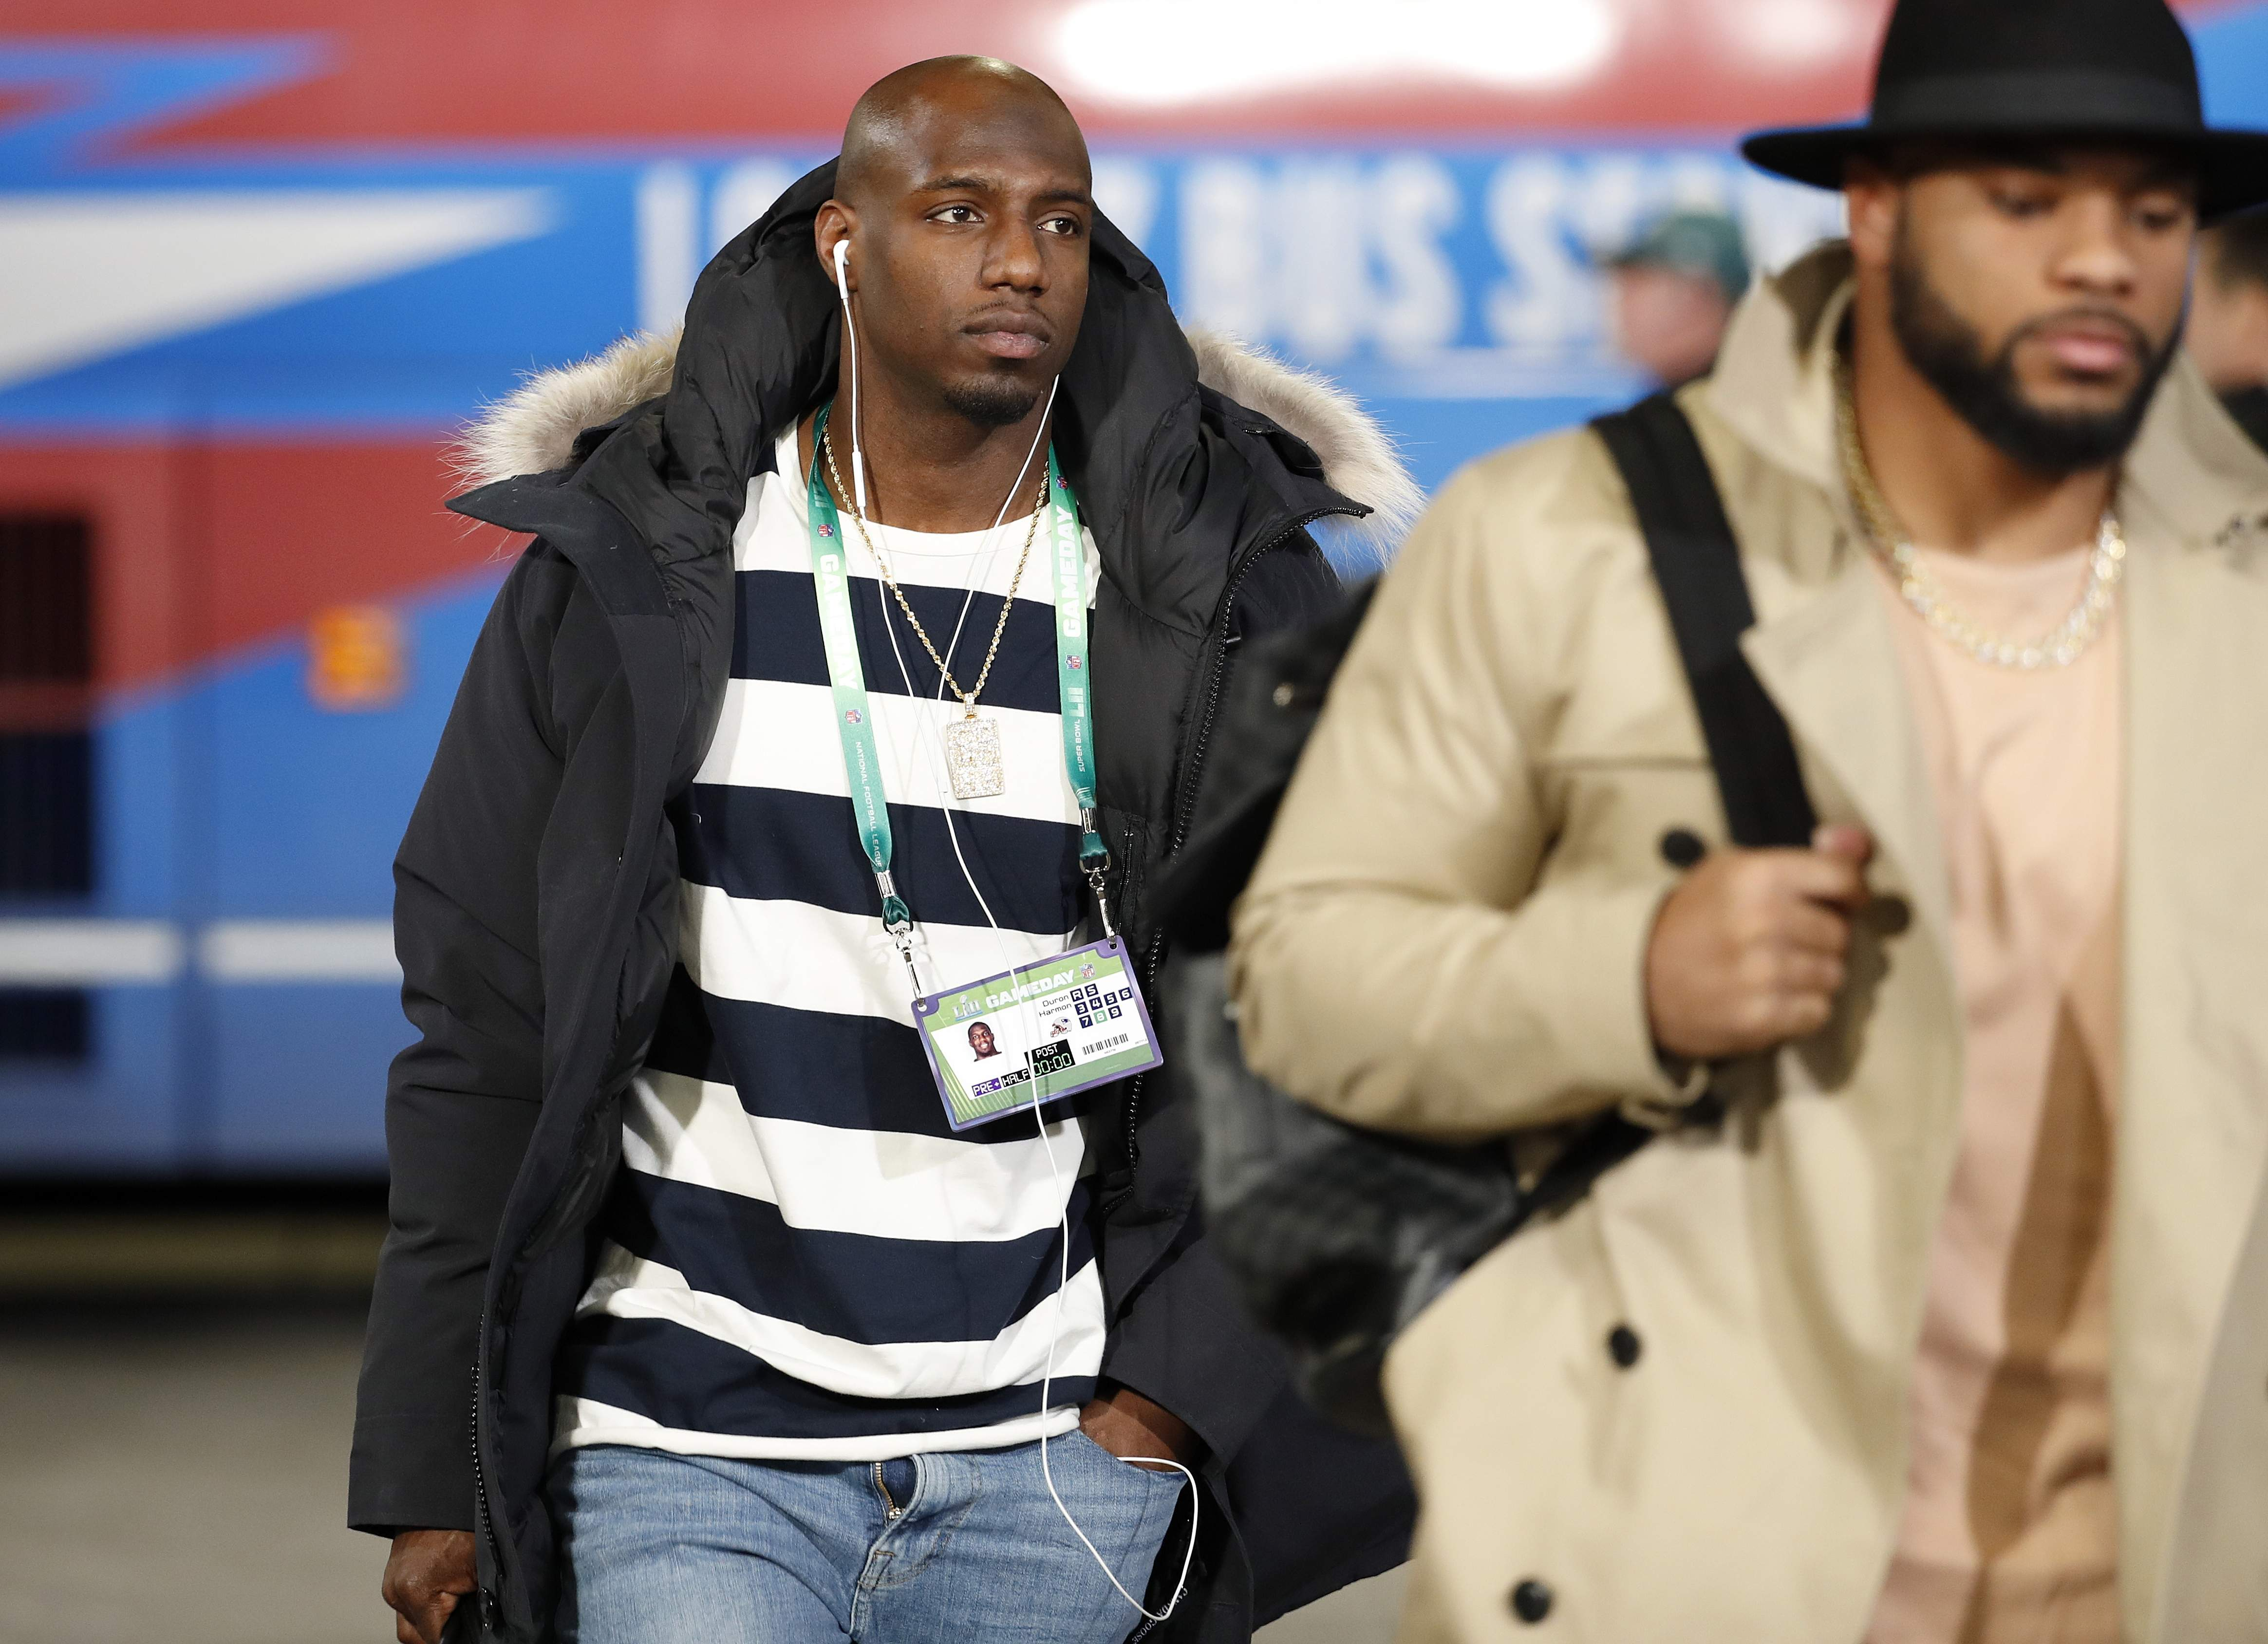 New England Patriots defensive back Duron Harmon arrives before the NFL Super Bowl 52 football game against the Philadelphia Eagles Sunday, Feb. 4, 2018, in Minneapolis. (AP Photo/Matt York)